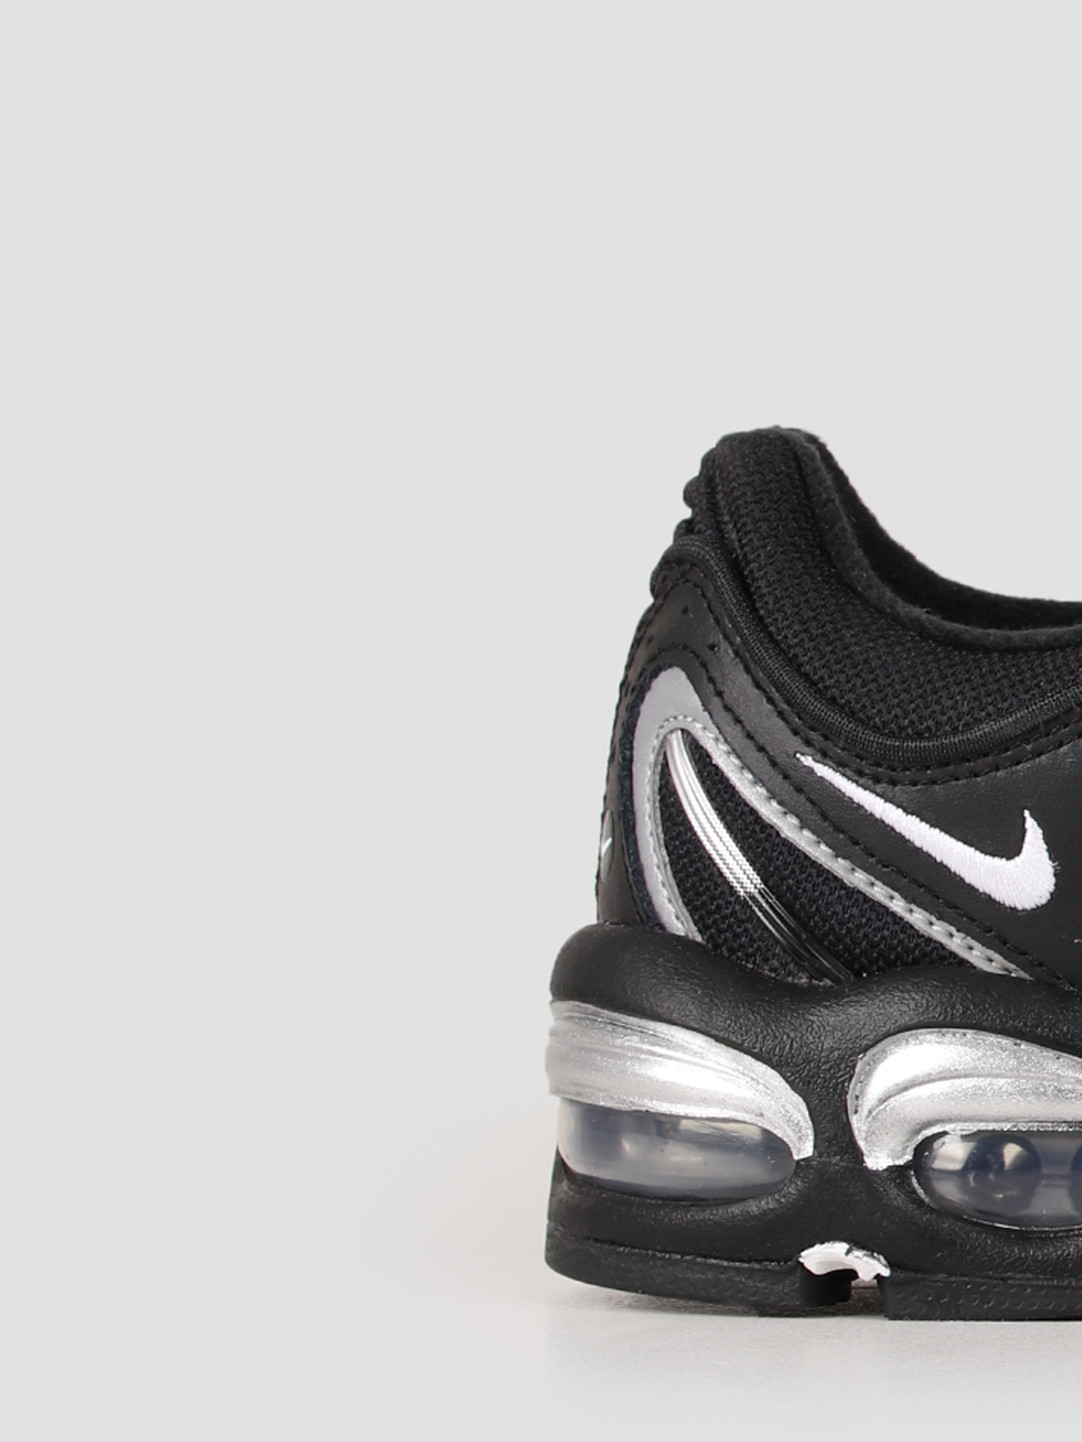 new release release date reliable quality Nike Air Max Tailwind Iv Black White Metallic Silver AQ2567-003 ...